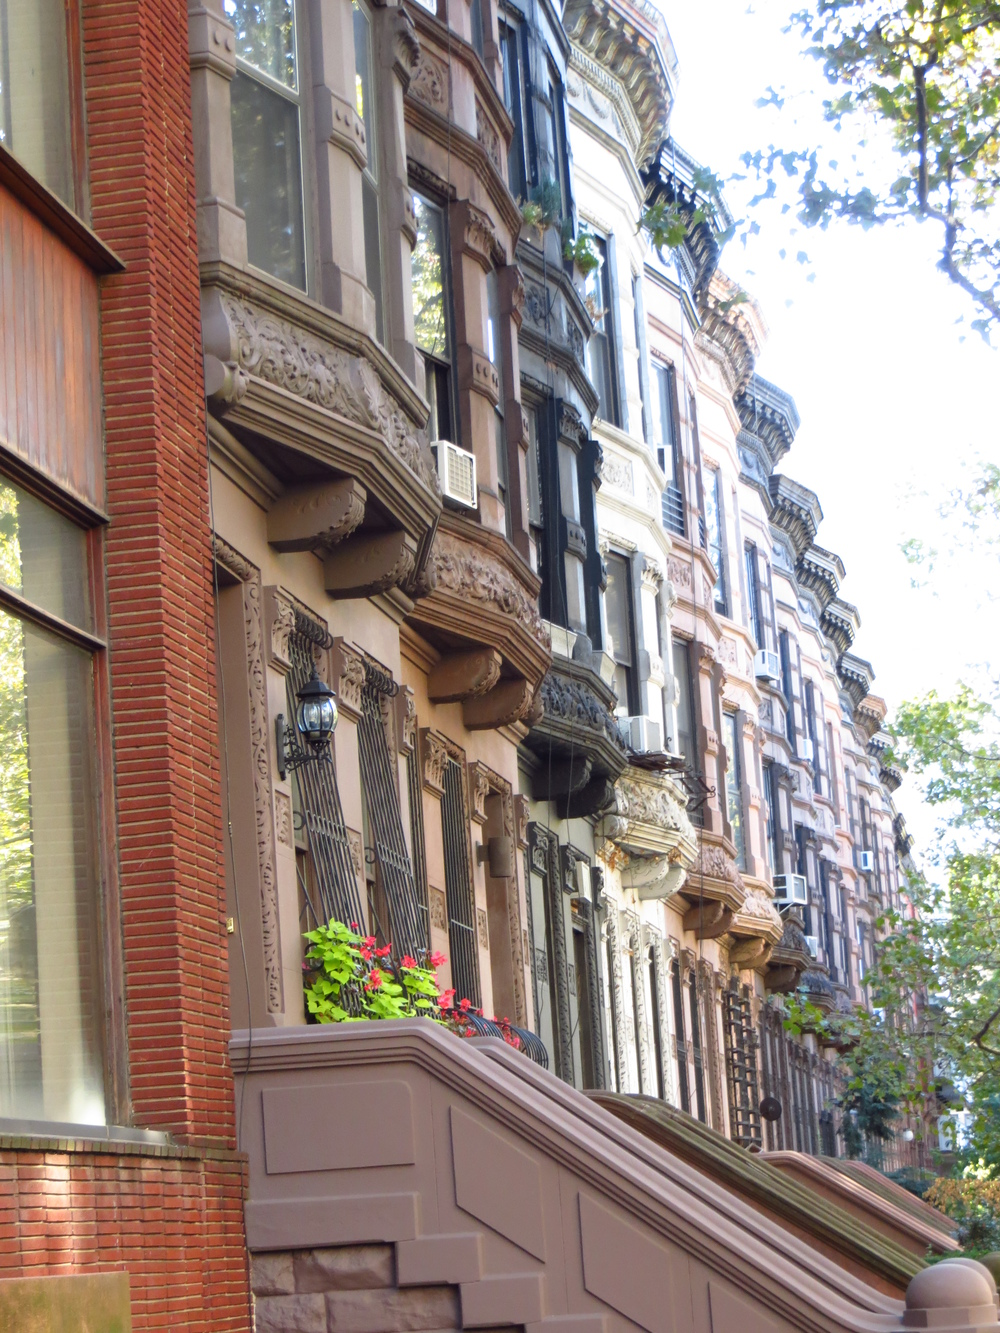 More archetypal brownstones